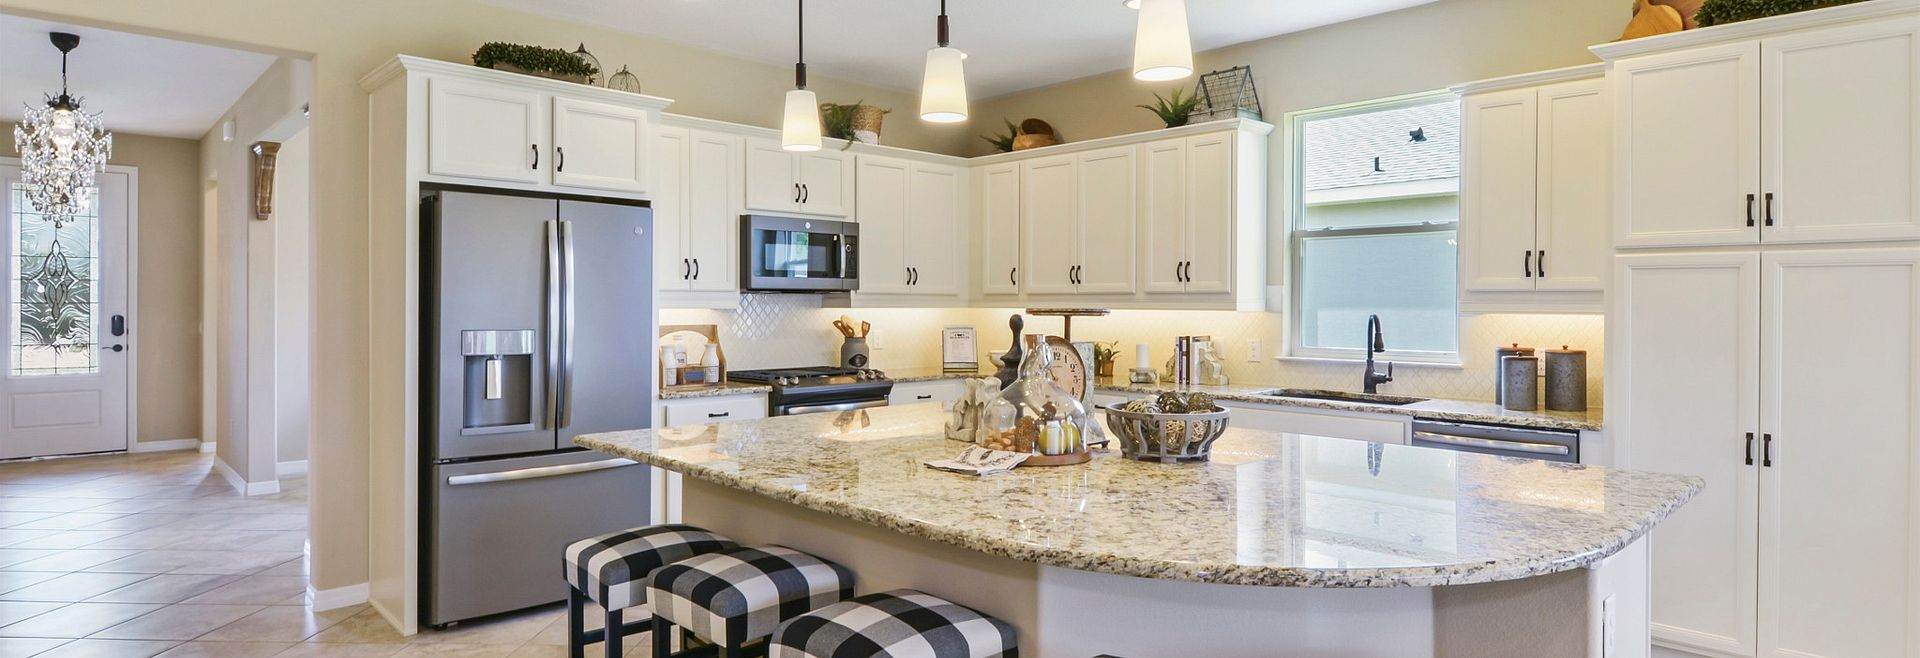 Ocala Declare Model Home Kitchen